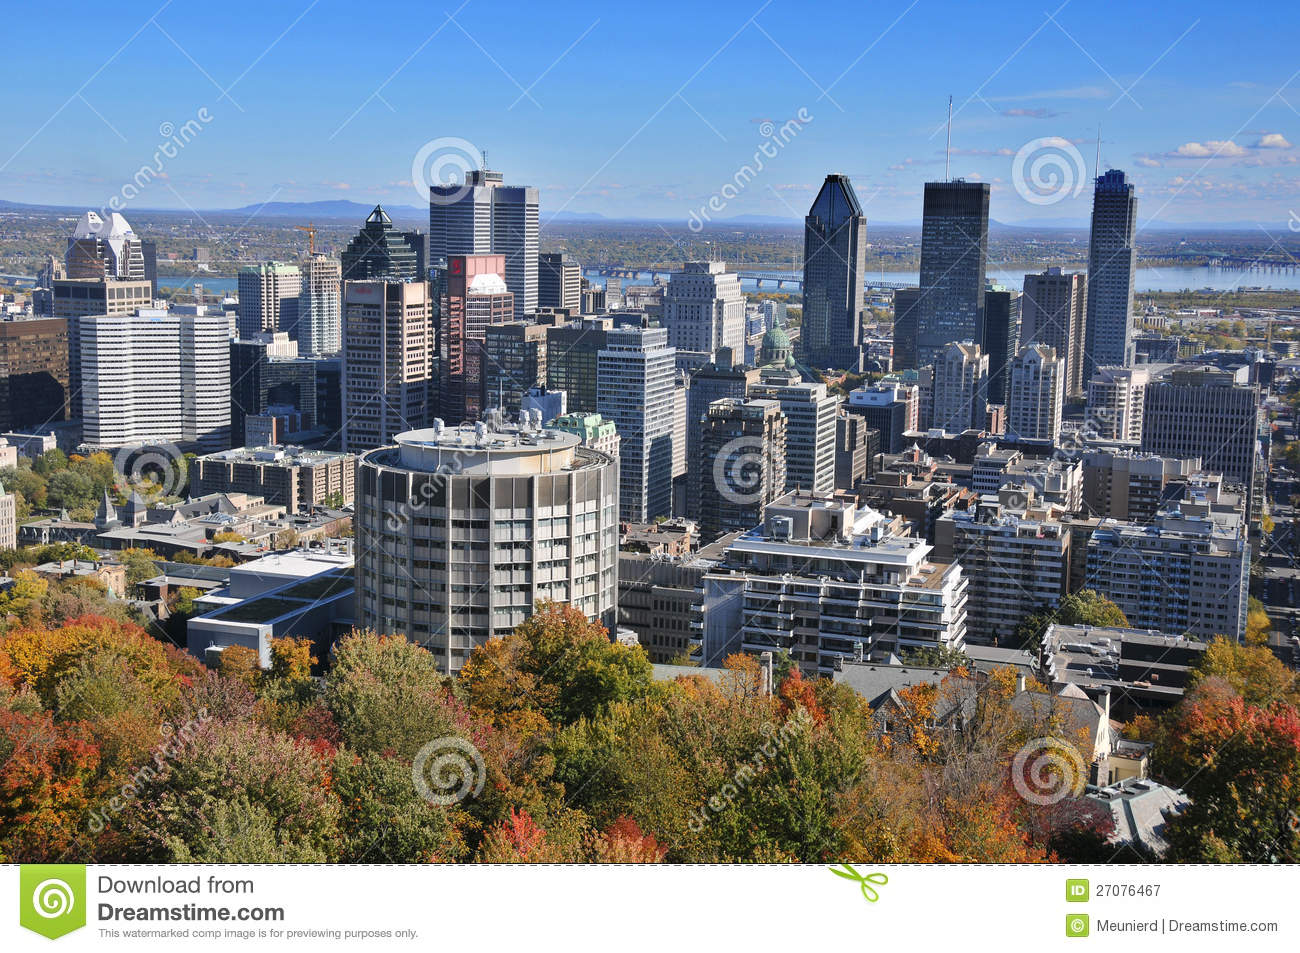 The view of the city of Montreal